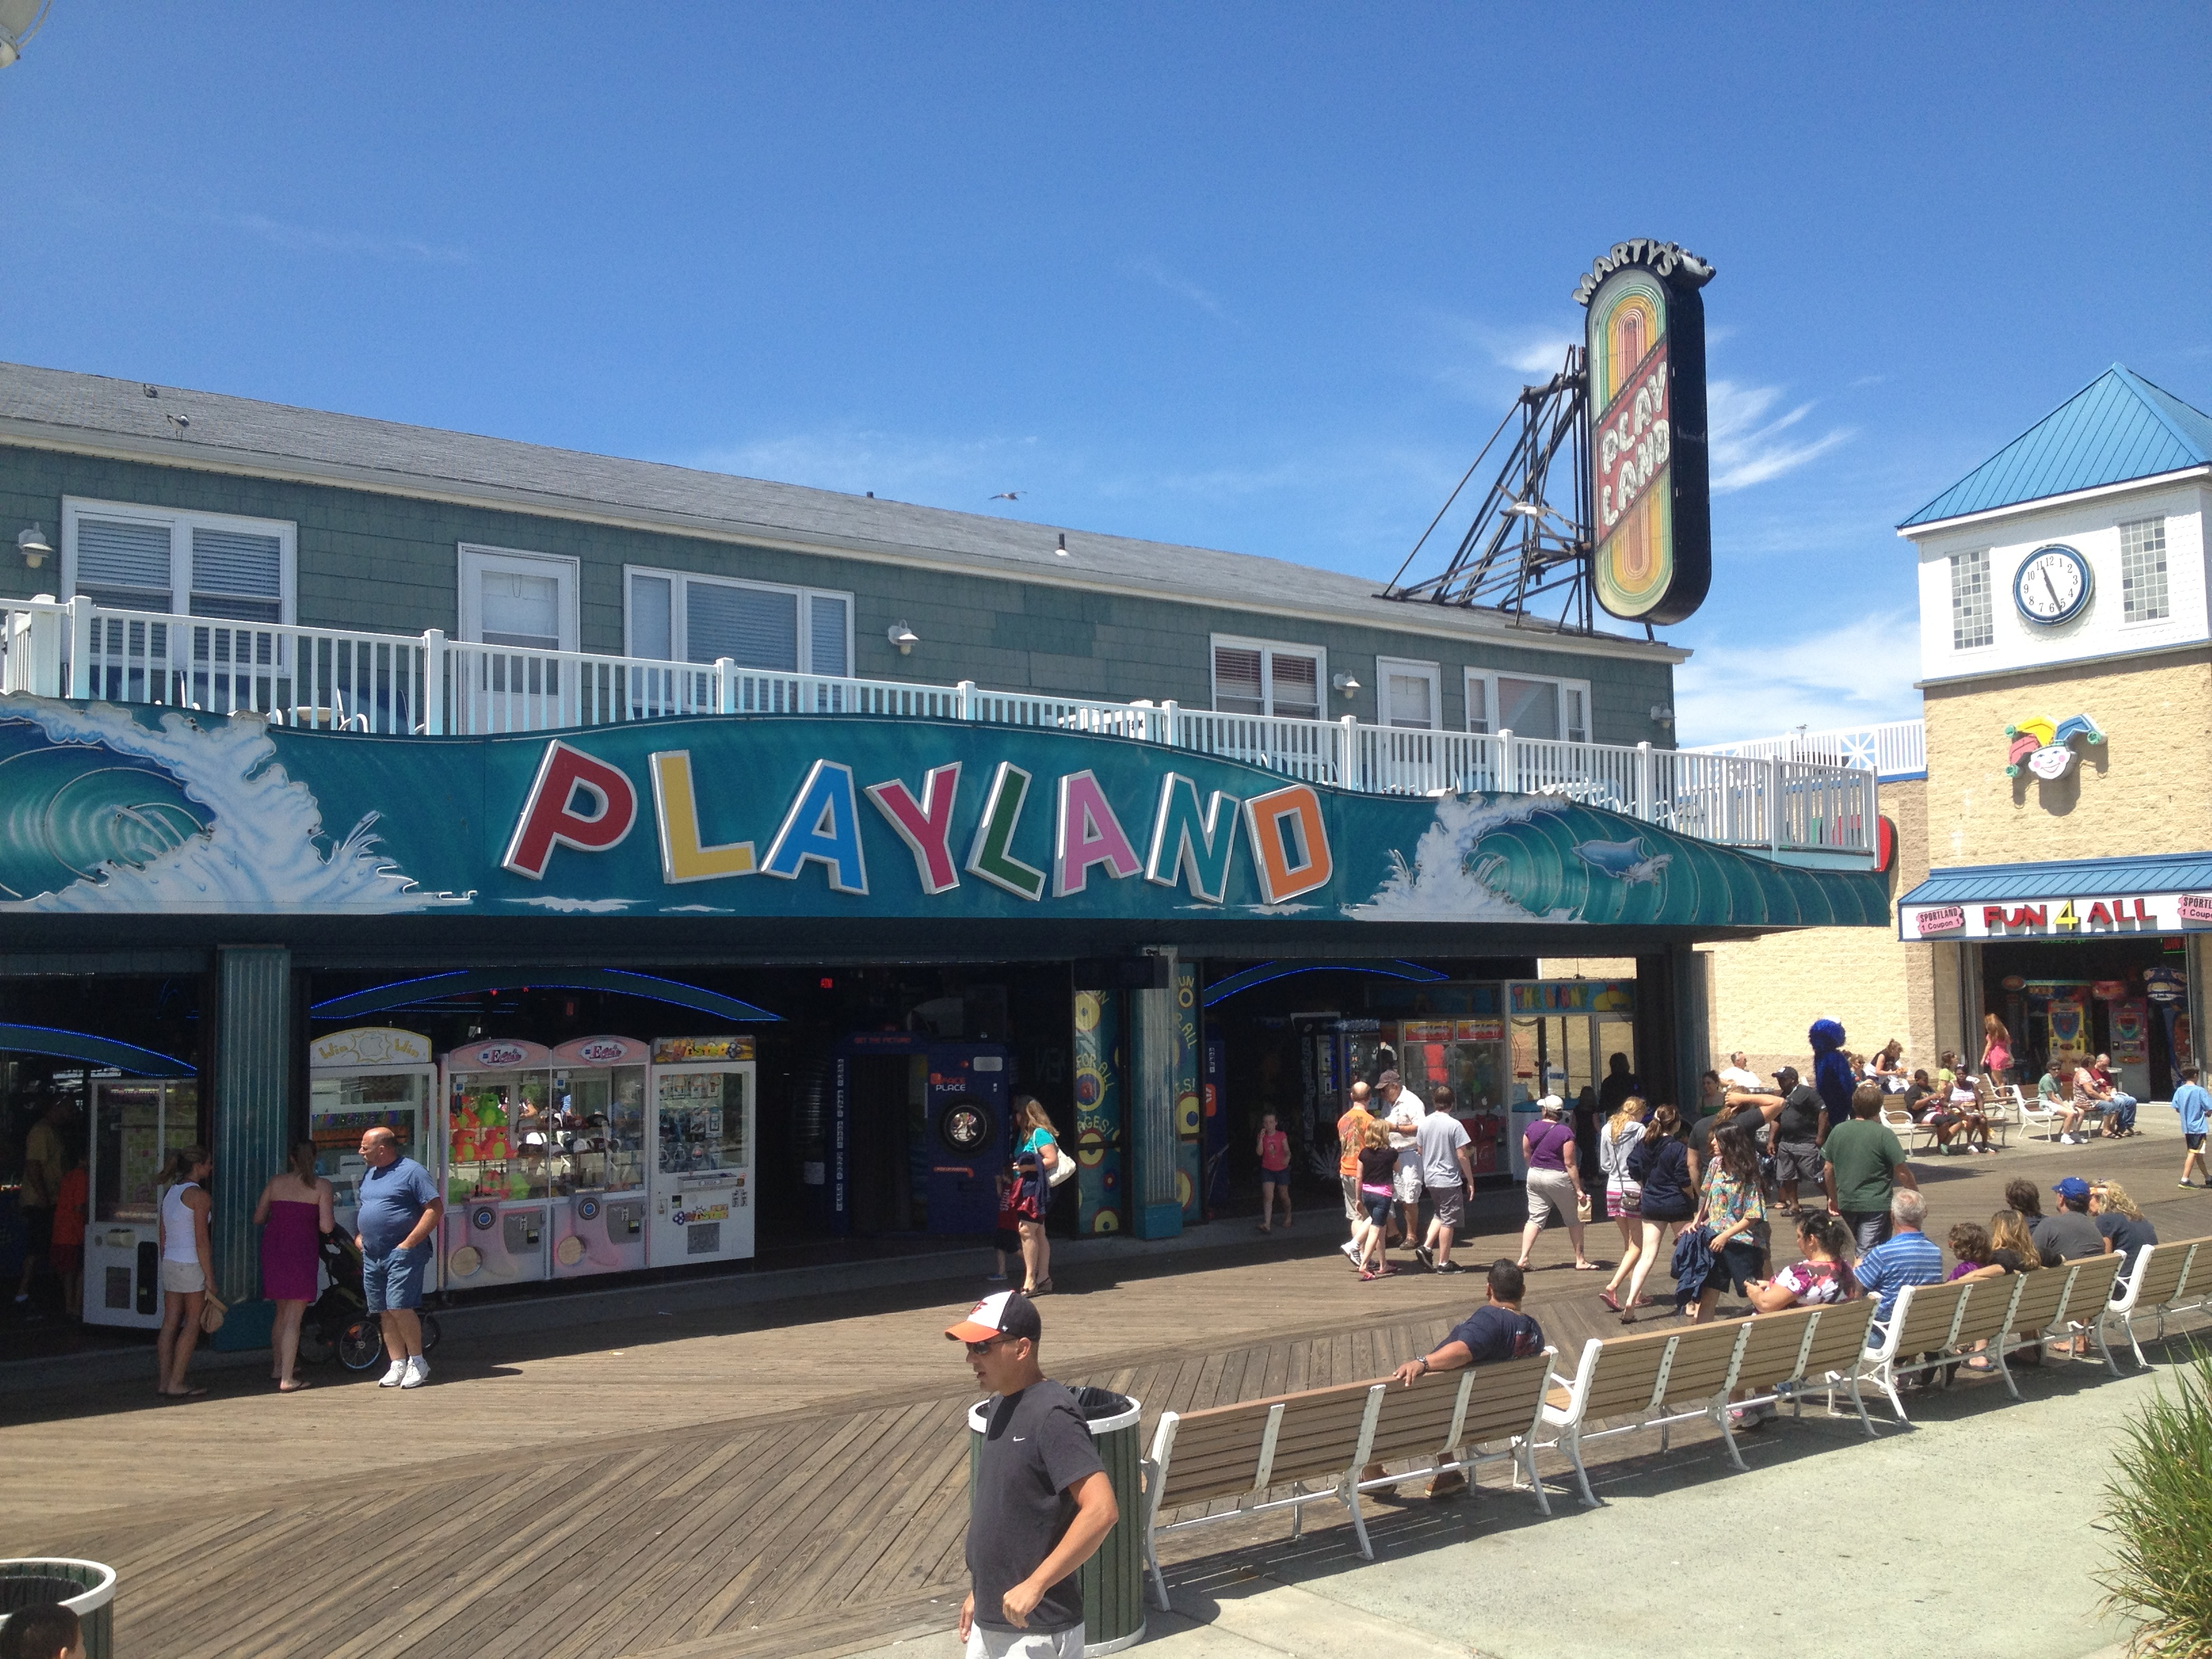 Martys-Playland-Arcade-Ocean City-MD-02.jpg